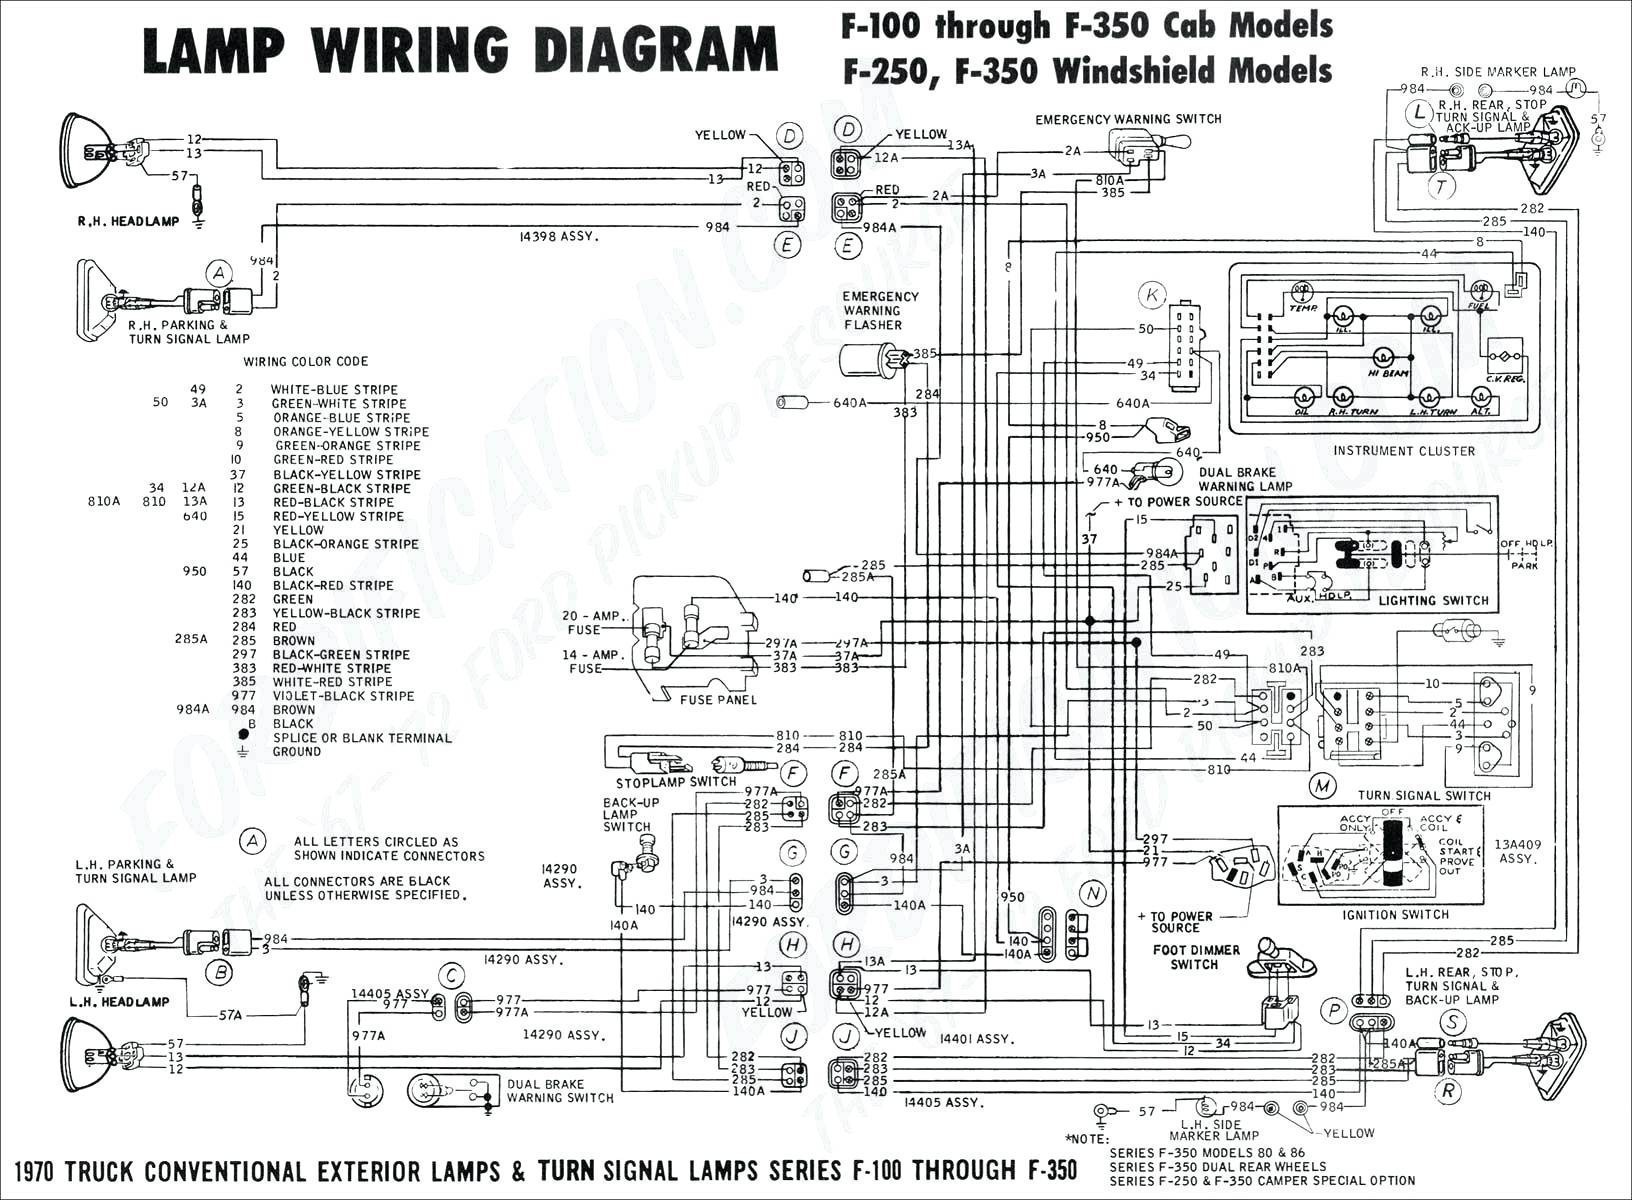 2000 mitsubishi galant ignition wiring diagram z3 wiring library rh 6 fdesa mein custombike de